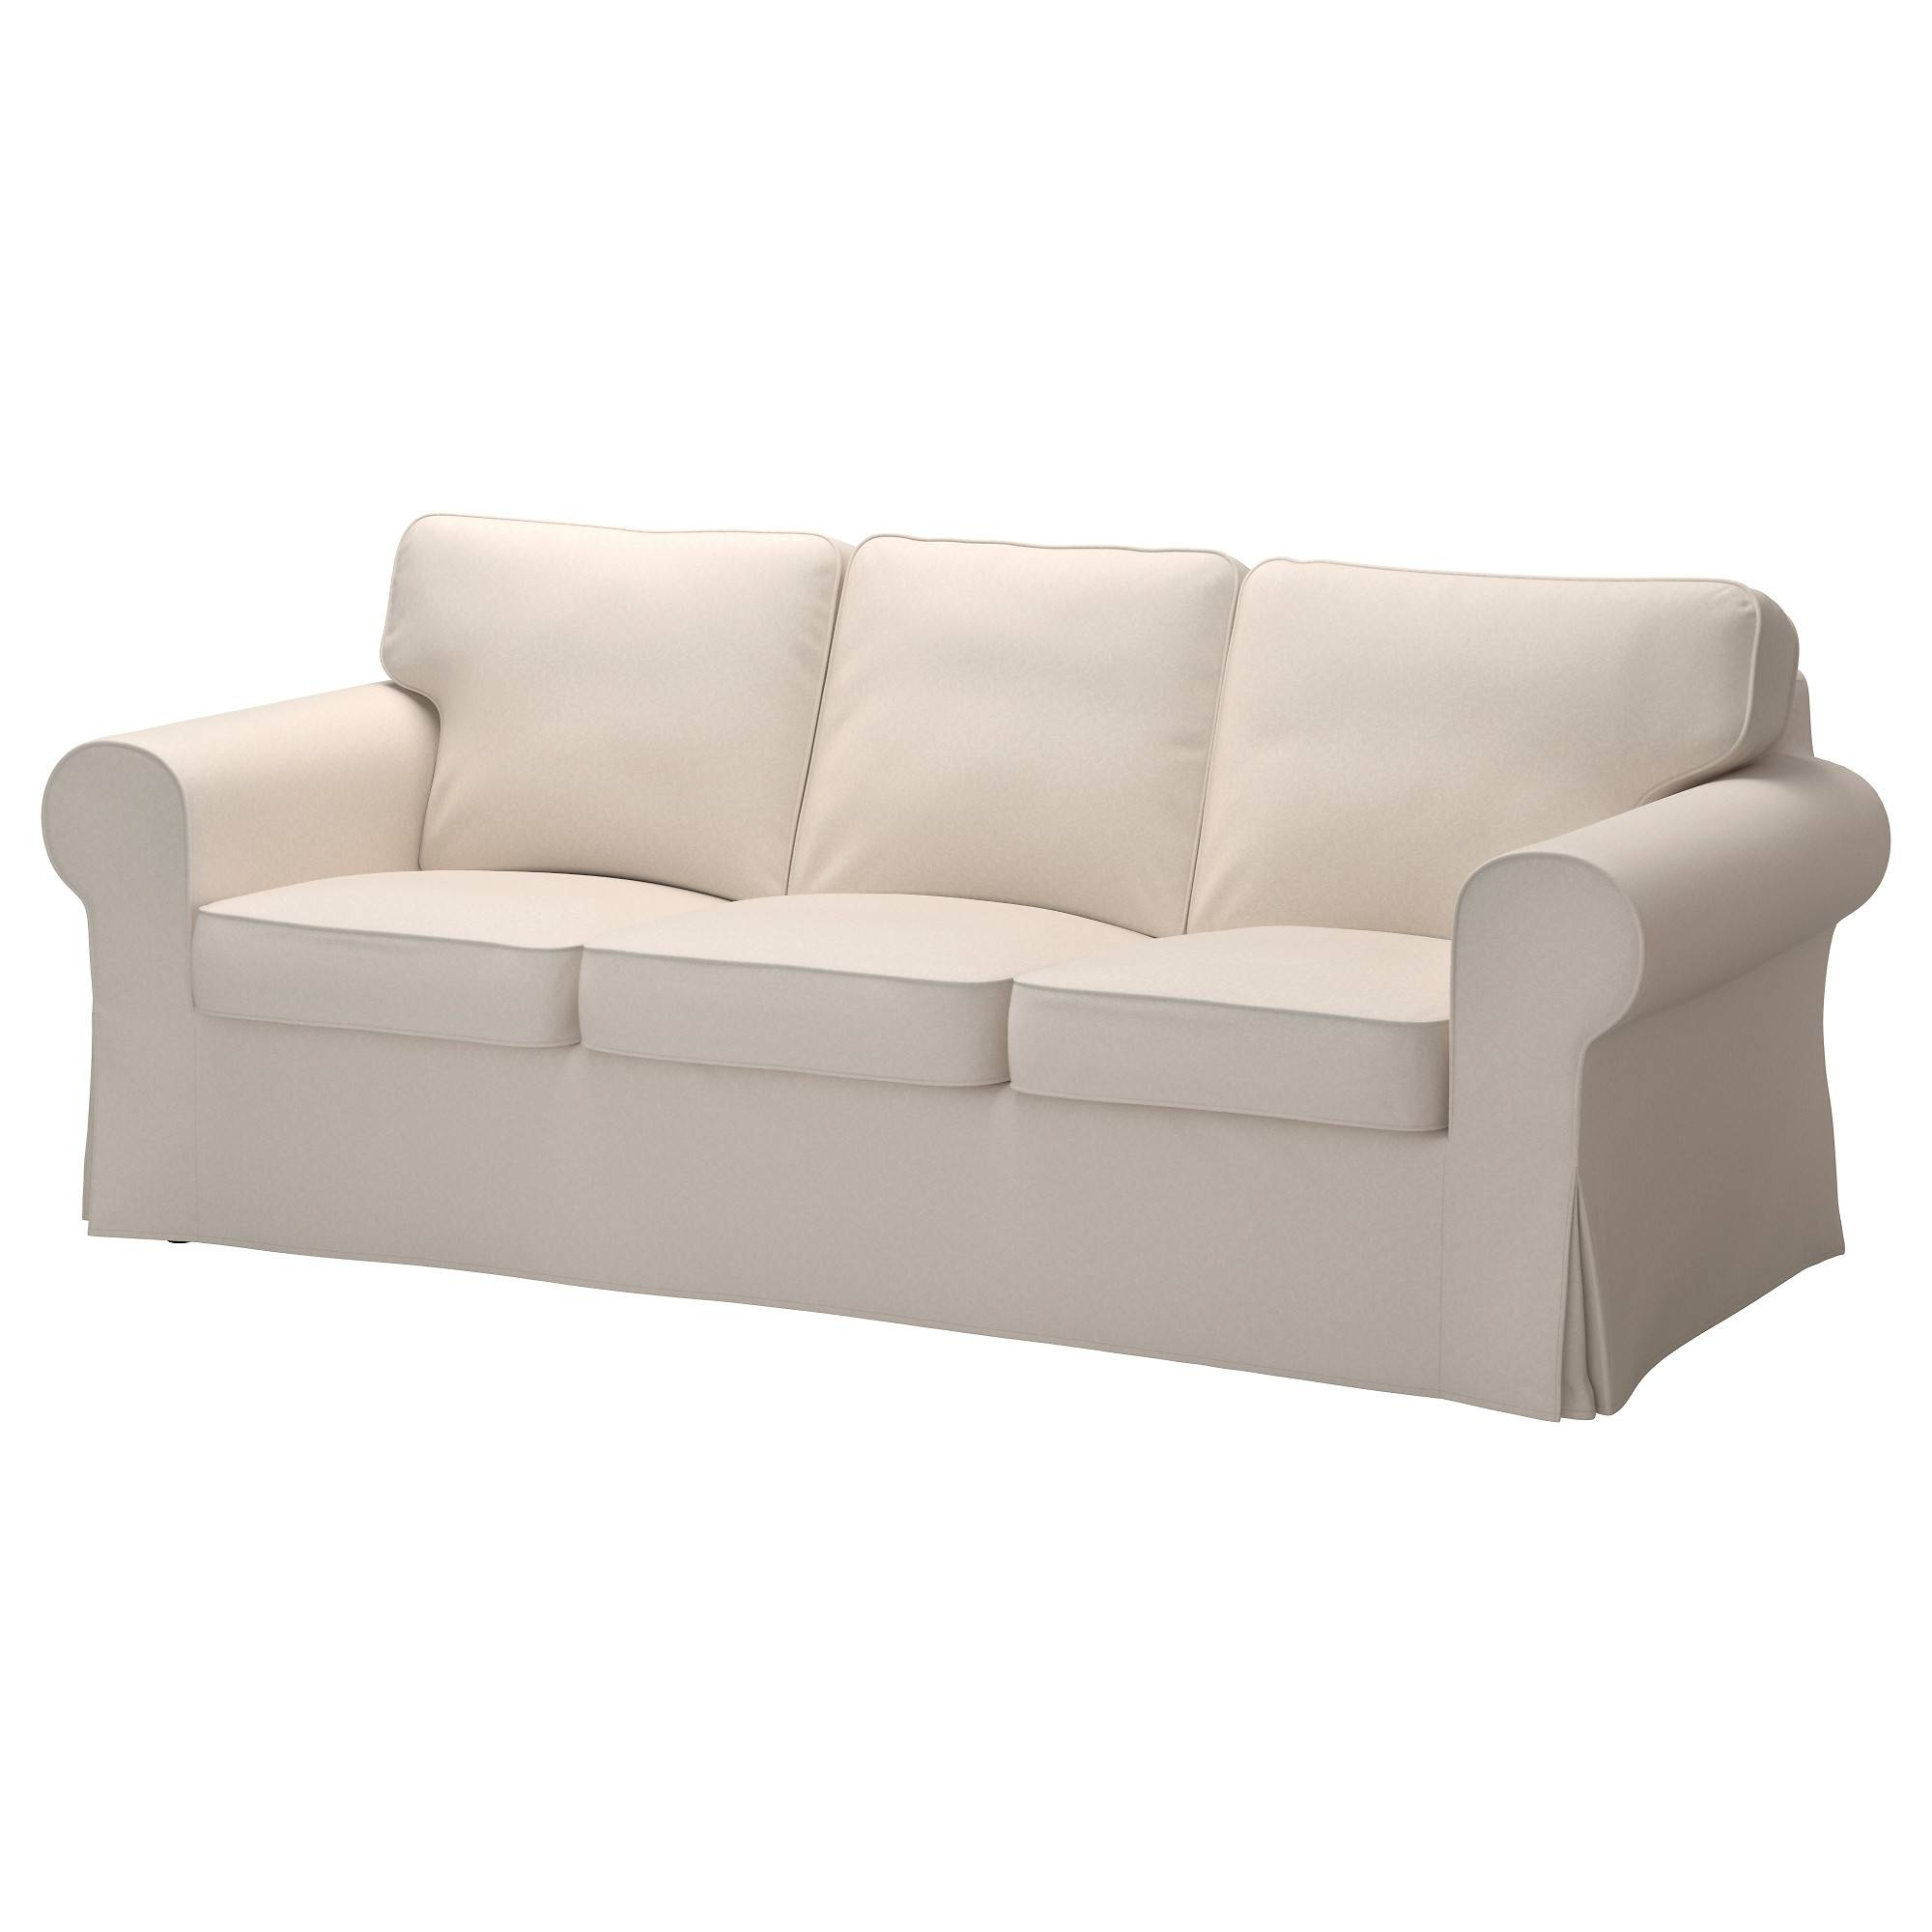 cheap or plus recliners small sleeper for and lane sale com with brilliant loveseat sofa sofas loveseats sets popular ege couch sectional inside sushi